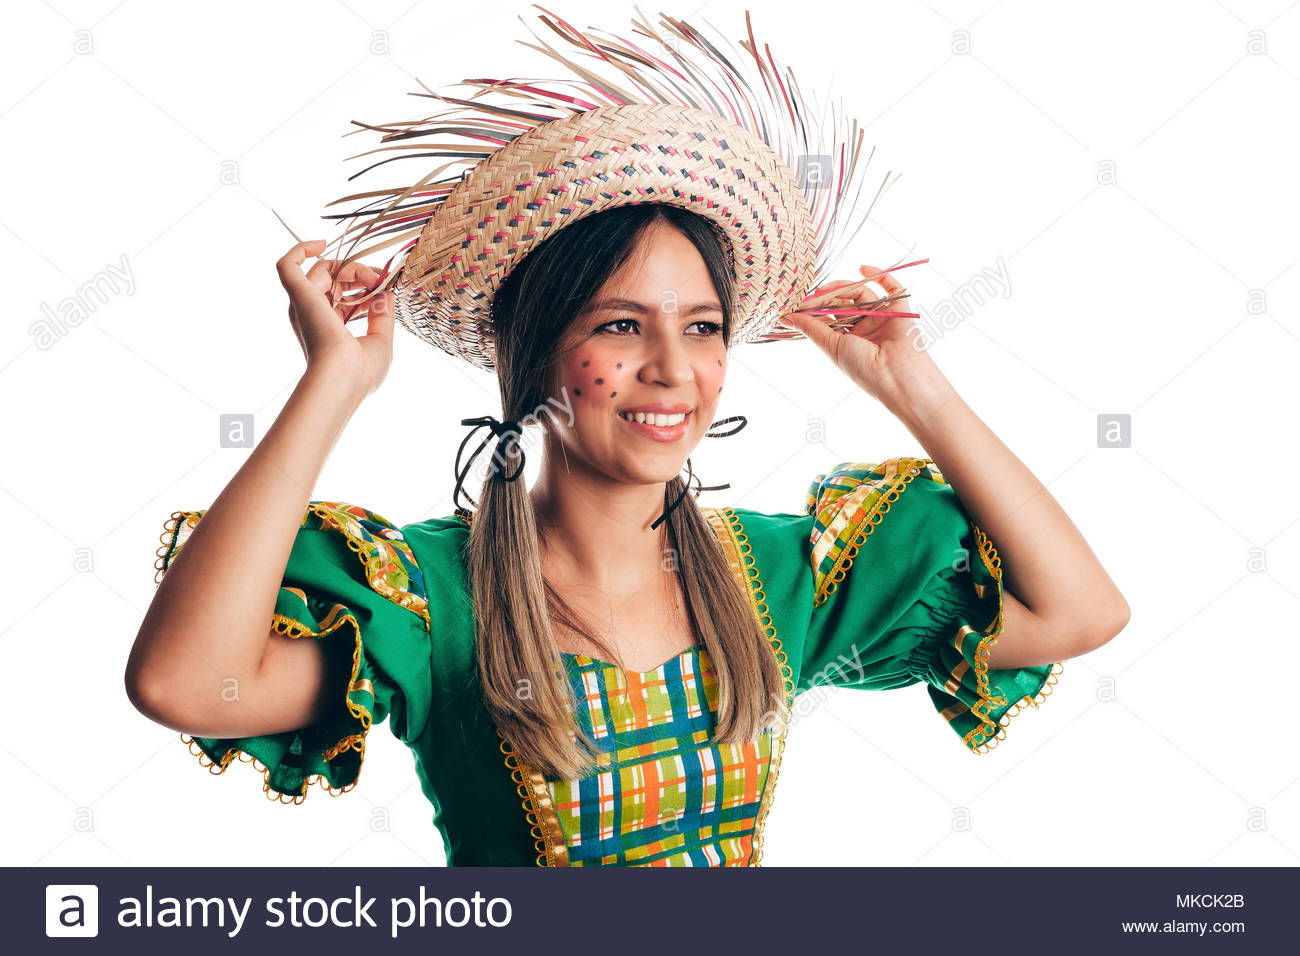 Festa Junina Stock Photos & Festa Junina Stock Images - Alamy